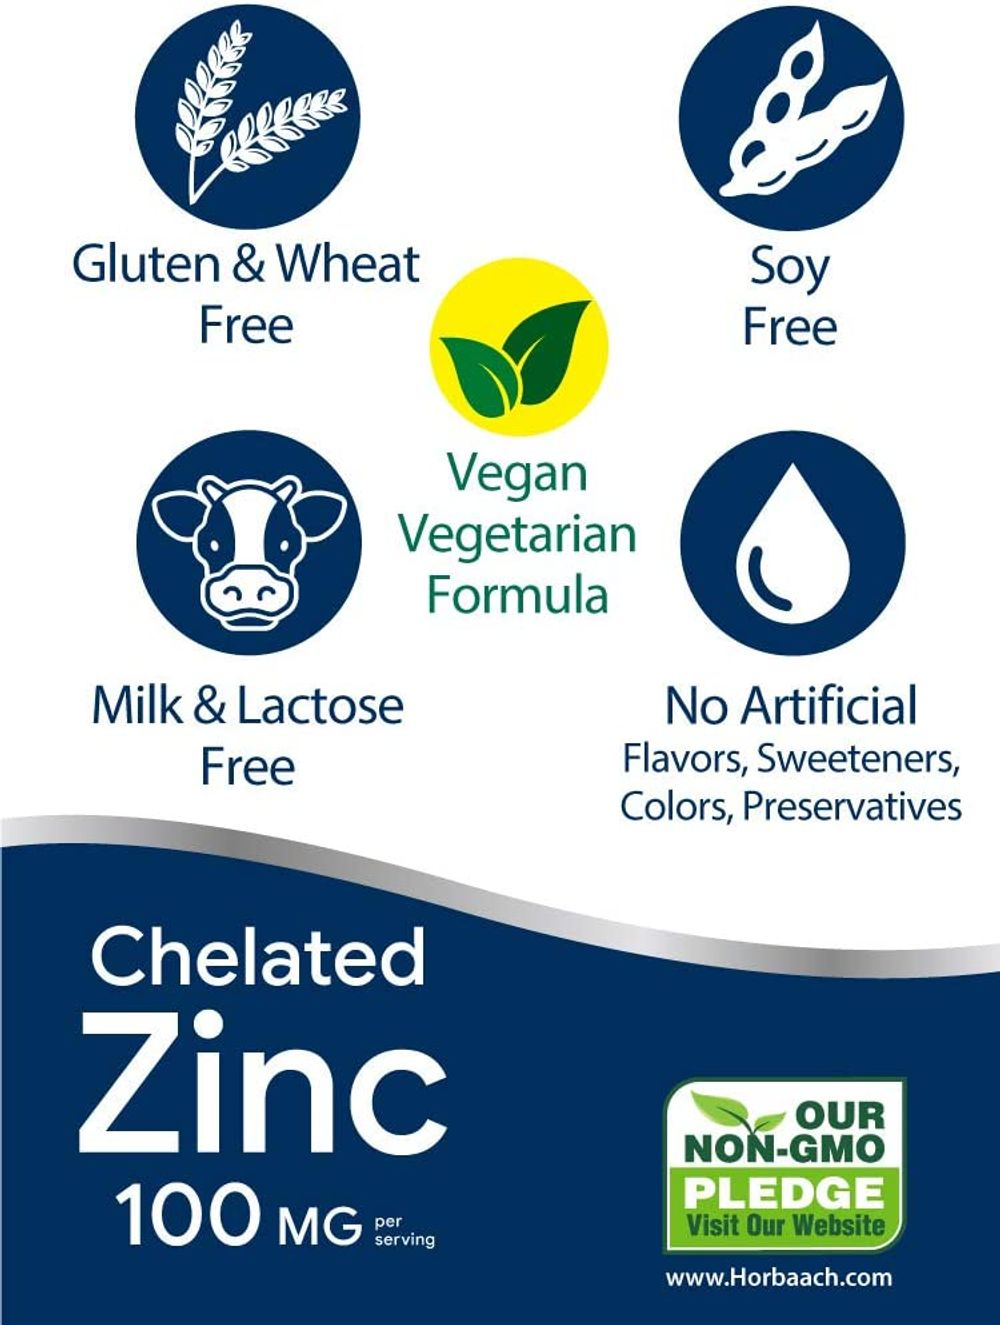 Chelated Zinc Supplement 100mg   250 Tablets   High Potency & Superior Absorption   Vegetarian, Non-GMO, Gluten Free   by Horbaach